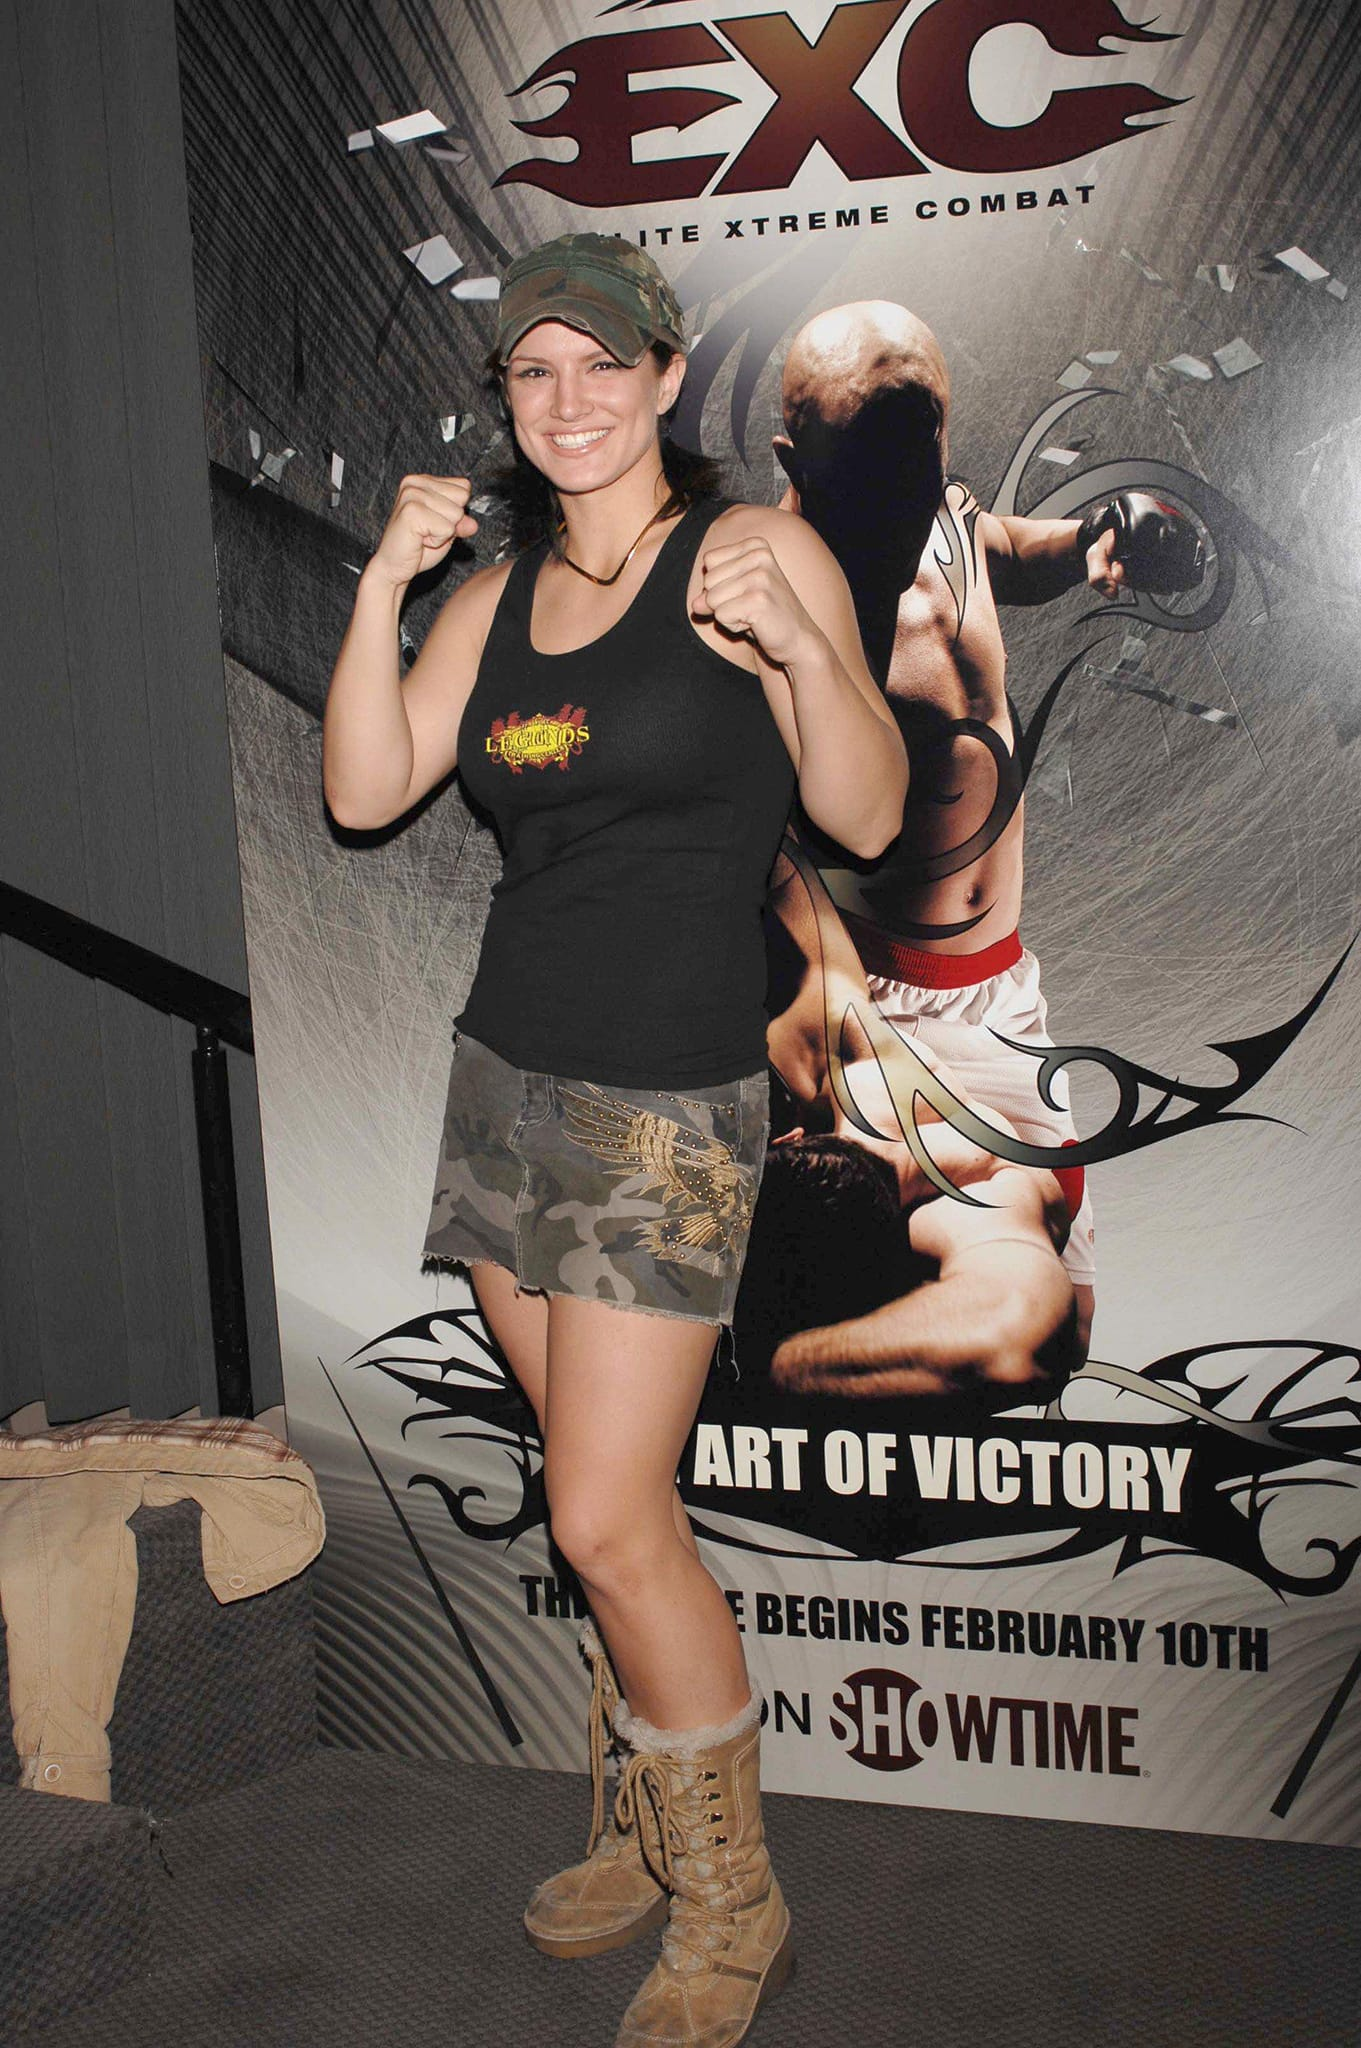 Former MMA fighter Gina Carano pictured in 2006 at the Showtime and Pro Elite press conference in Los Angeles